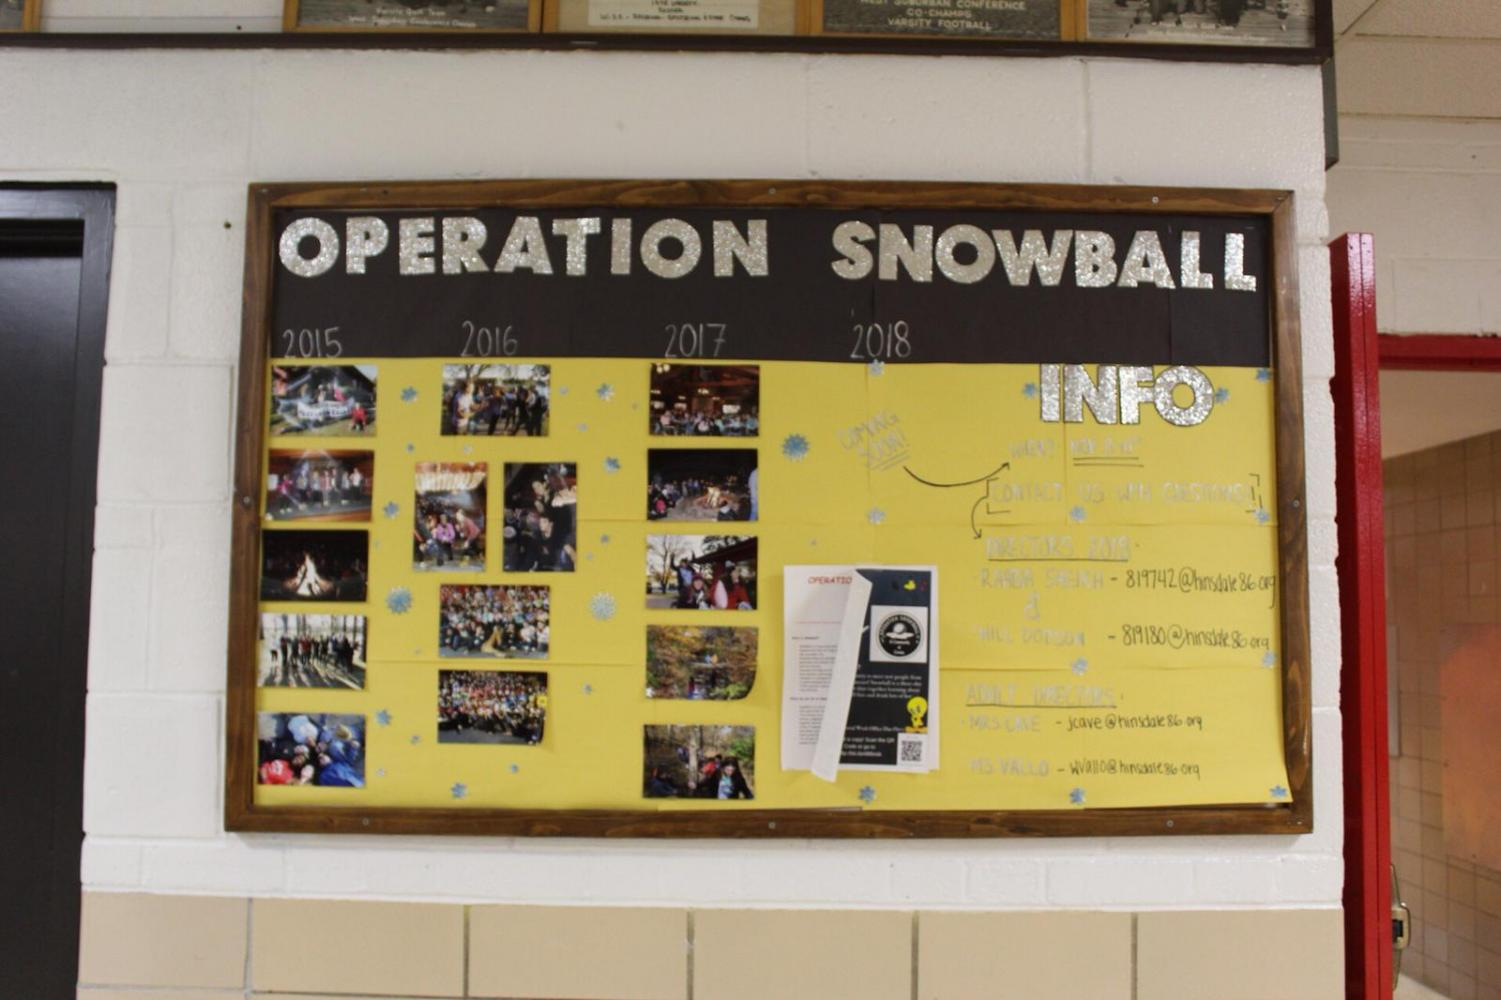 If you're curious about Operation Snowball, you can go check out the bulletin board outside the gym to see pictures from past years and more information.